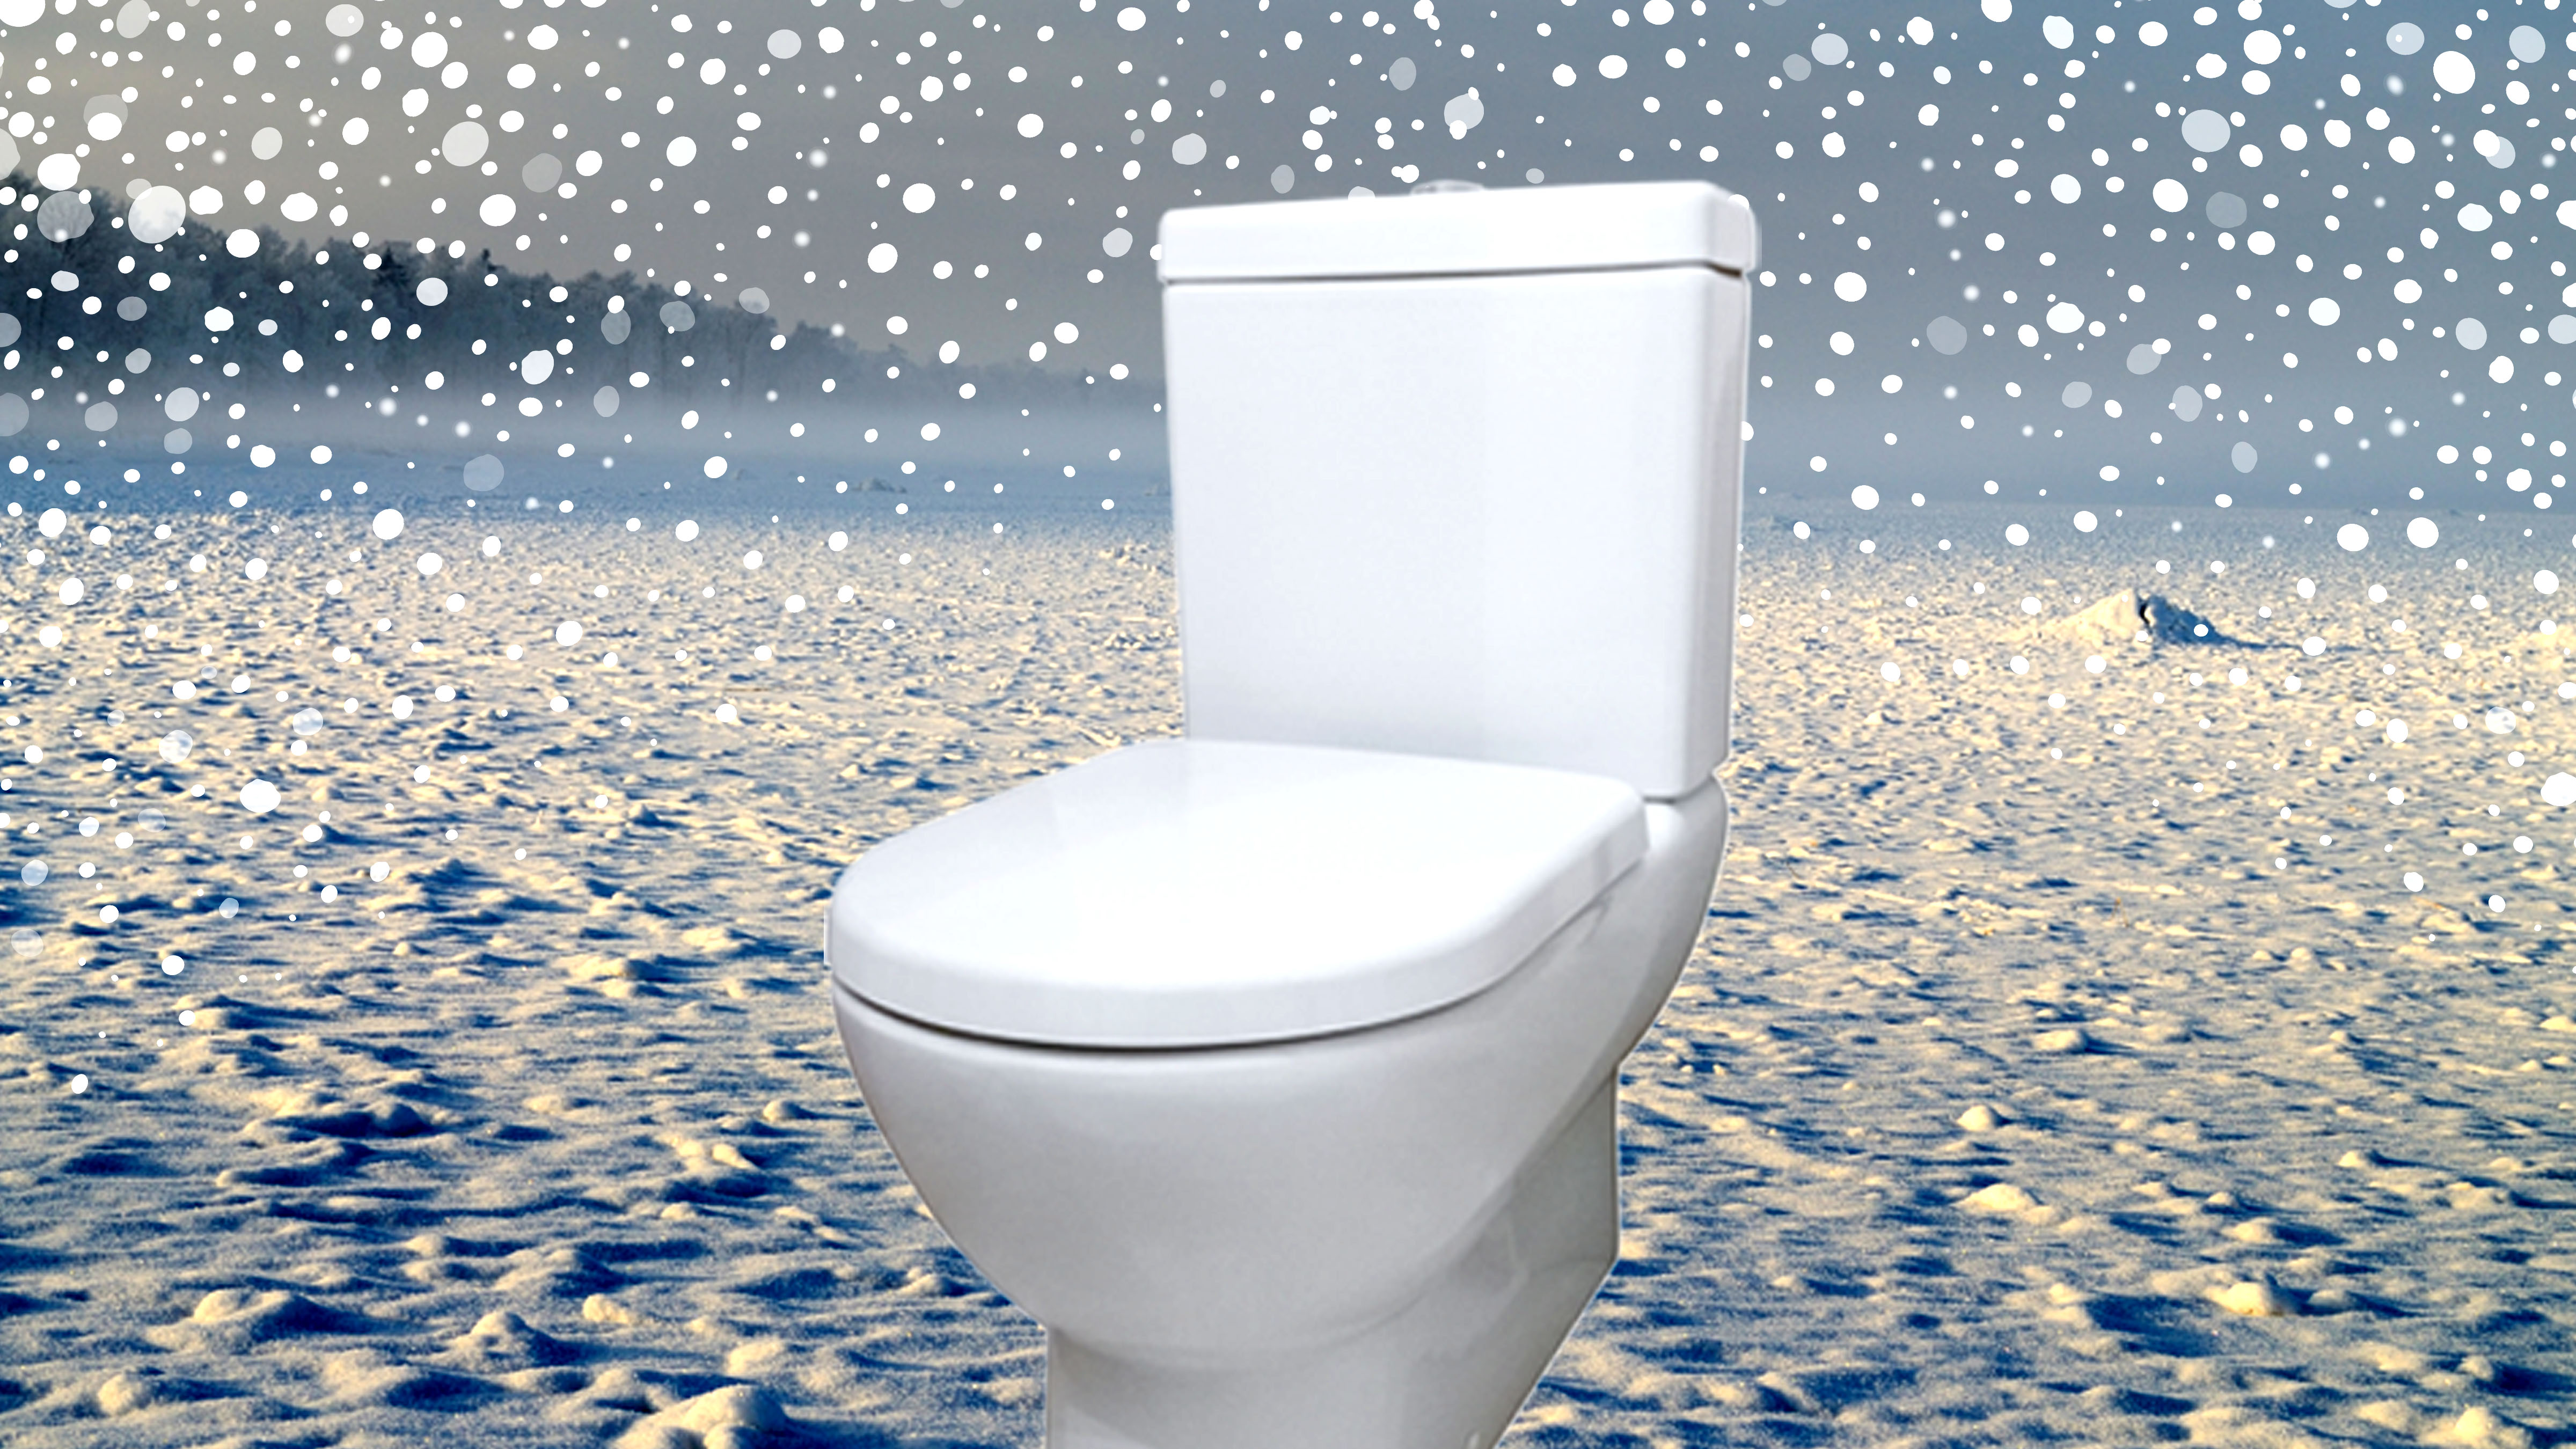 How To Warm Up A Freezing Cold Toilet Seat Dollar Shave Club